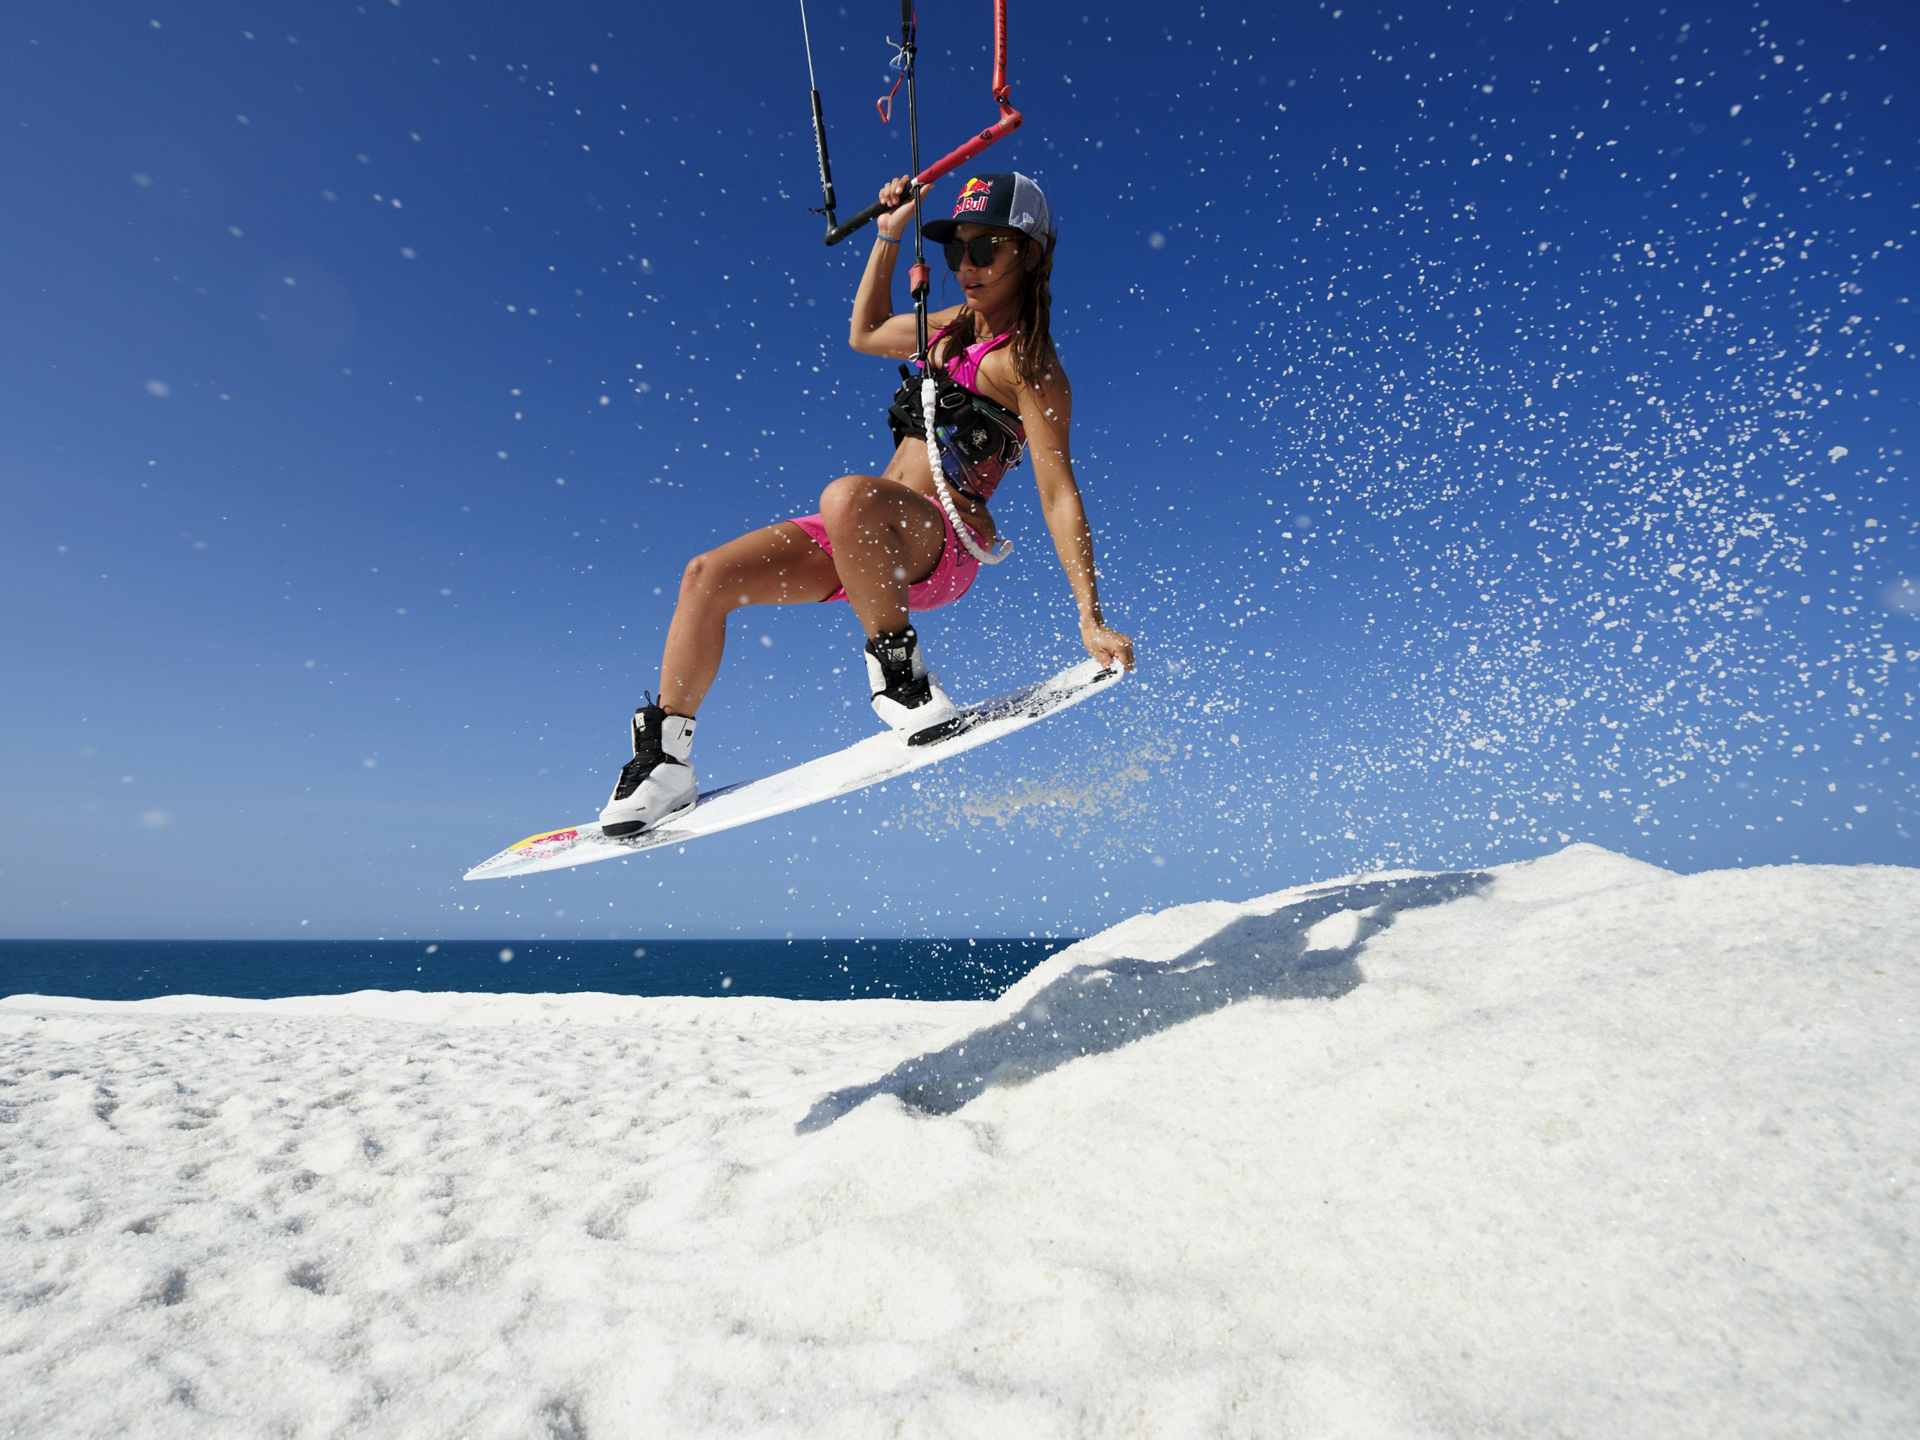 kitesurf wallpaper image - Bruna Kajiya jumping from salt mountain - in resolution: Standard 4:3 1920 X 1440